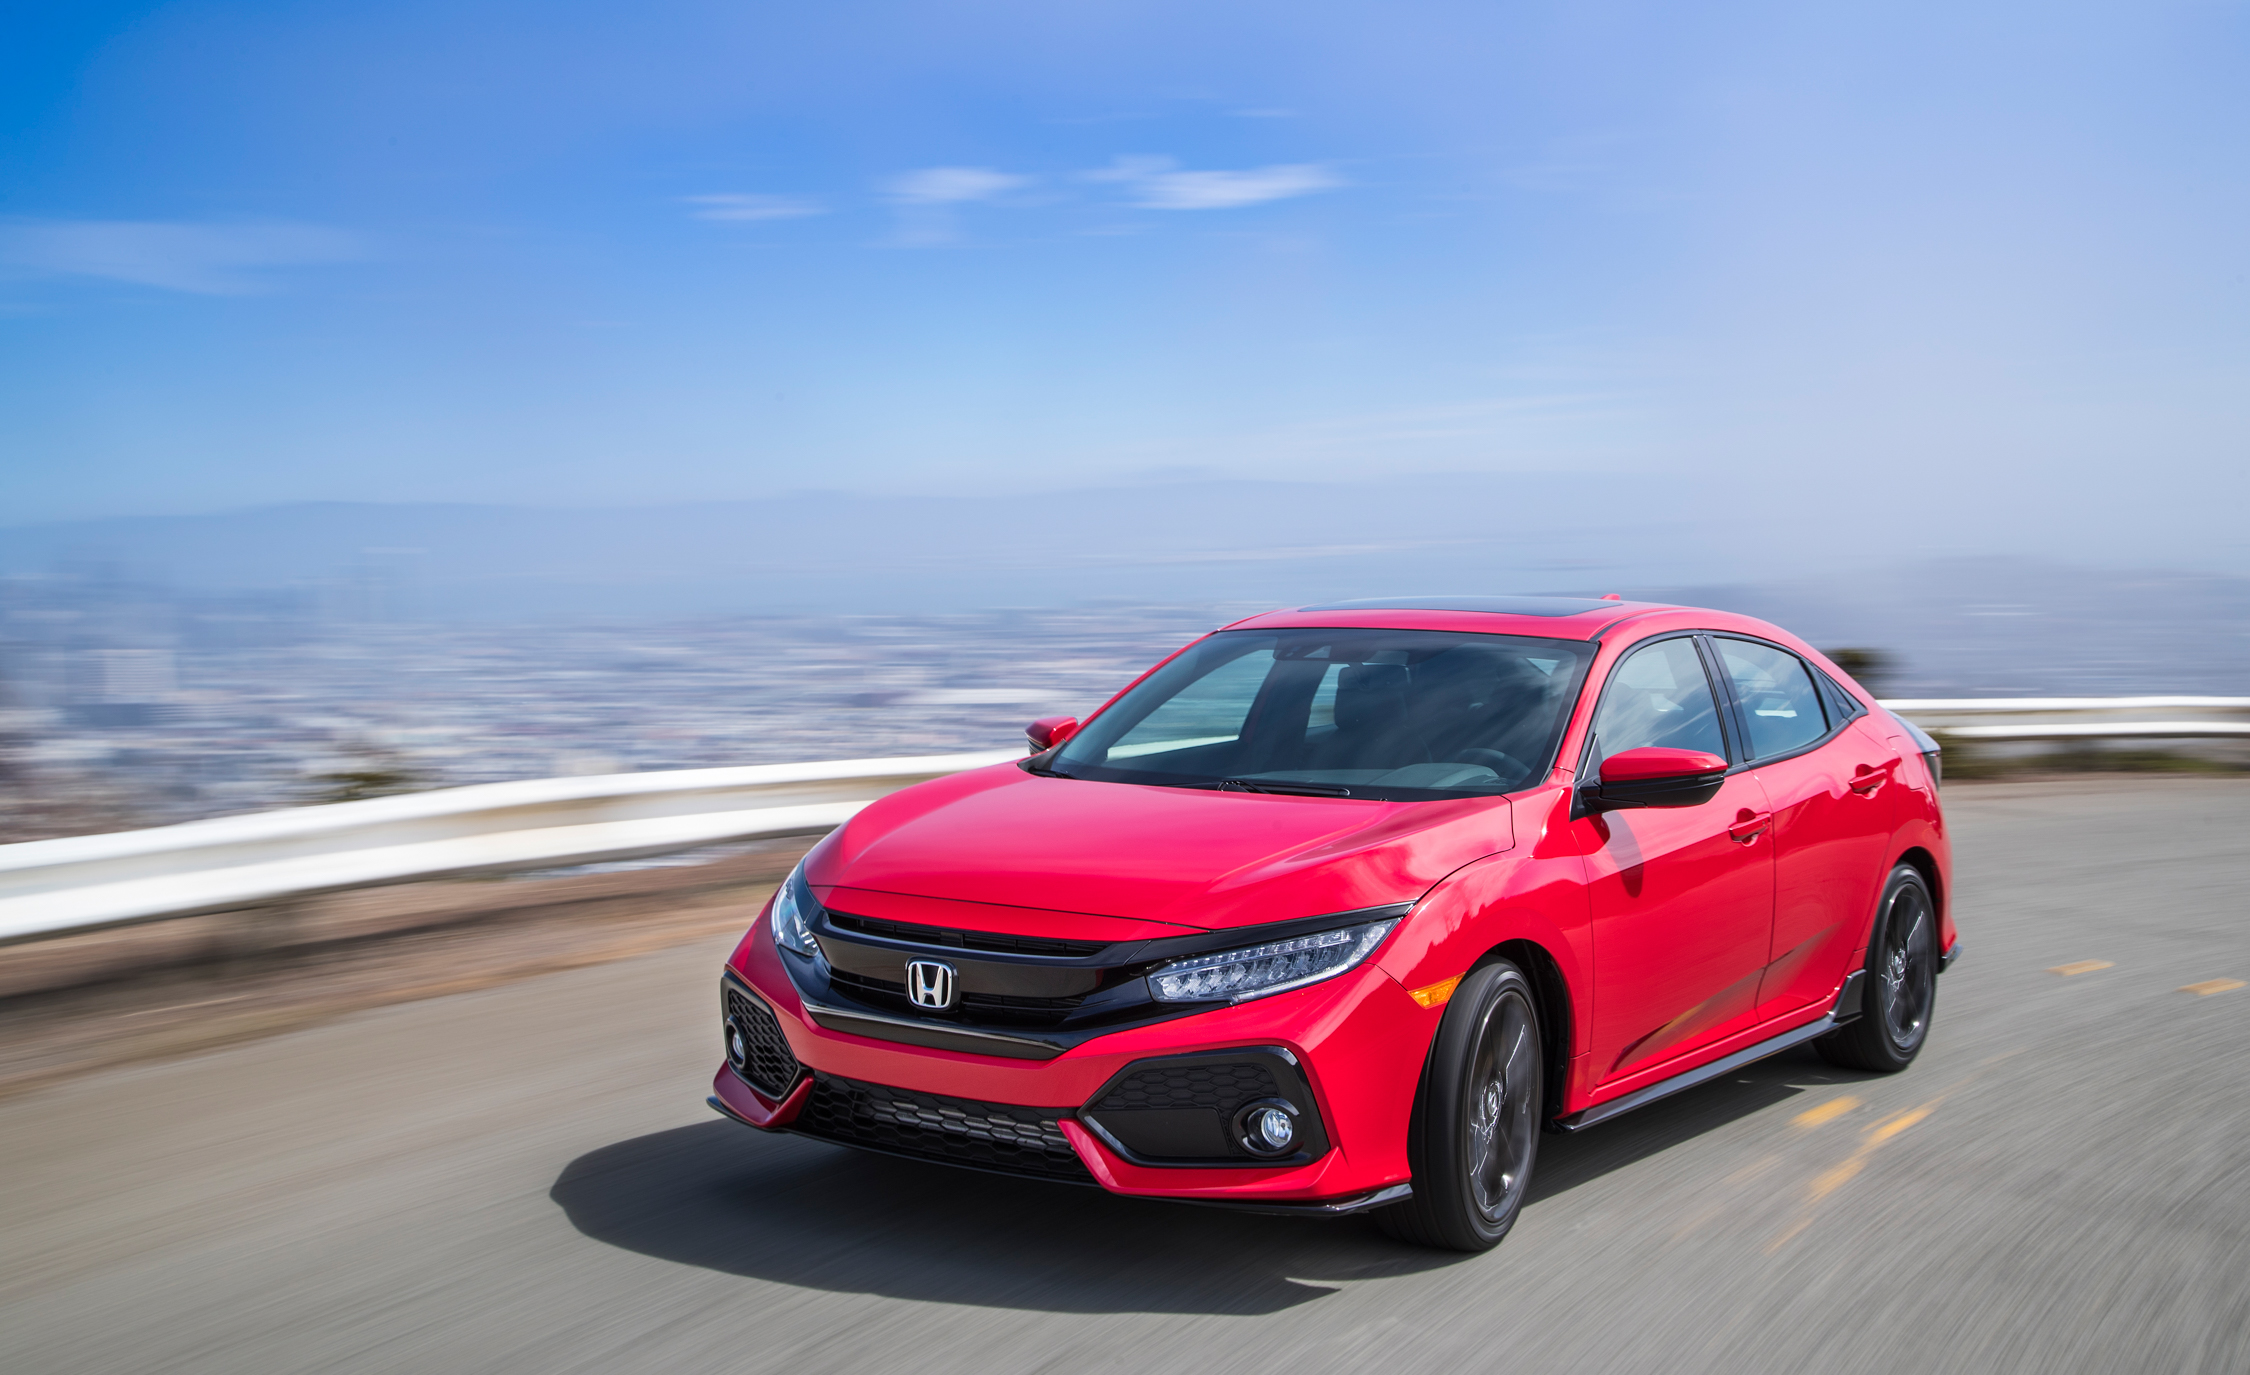 2017 Honda Civic Hatchback (View 13 of 34)